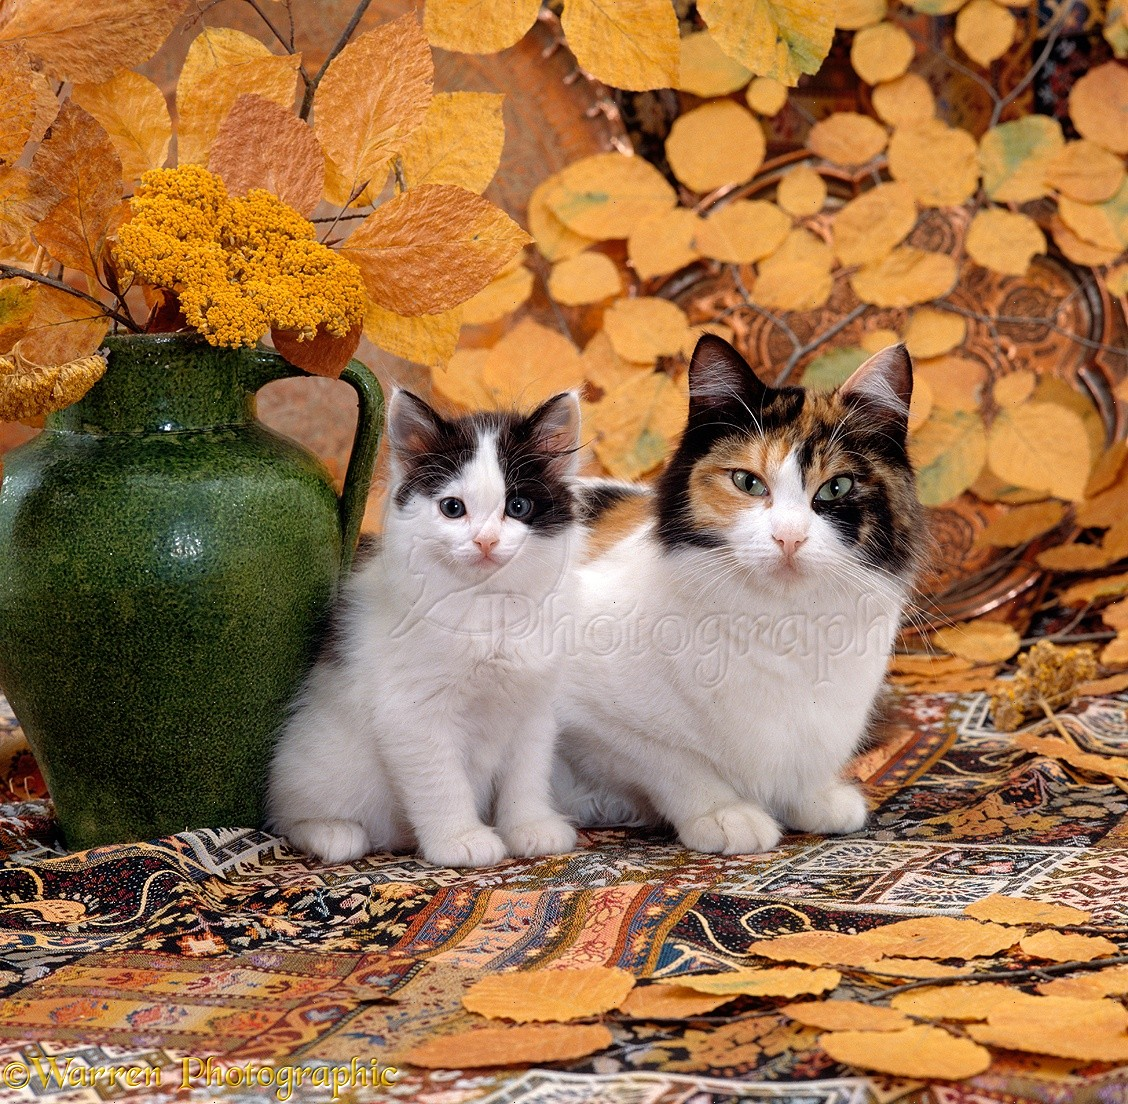 Cat and kitten vase and autumnal leaves photo wp16646 tortoiseshell and white mother cat with her black and white kitten with reviewsmspy